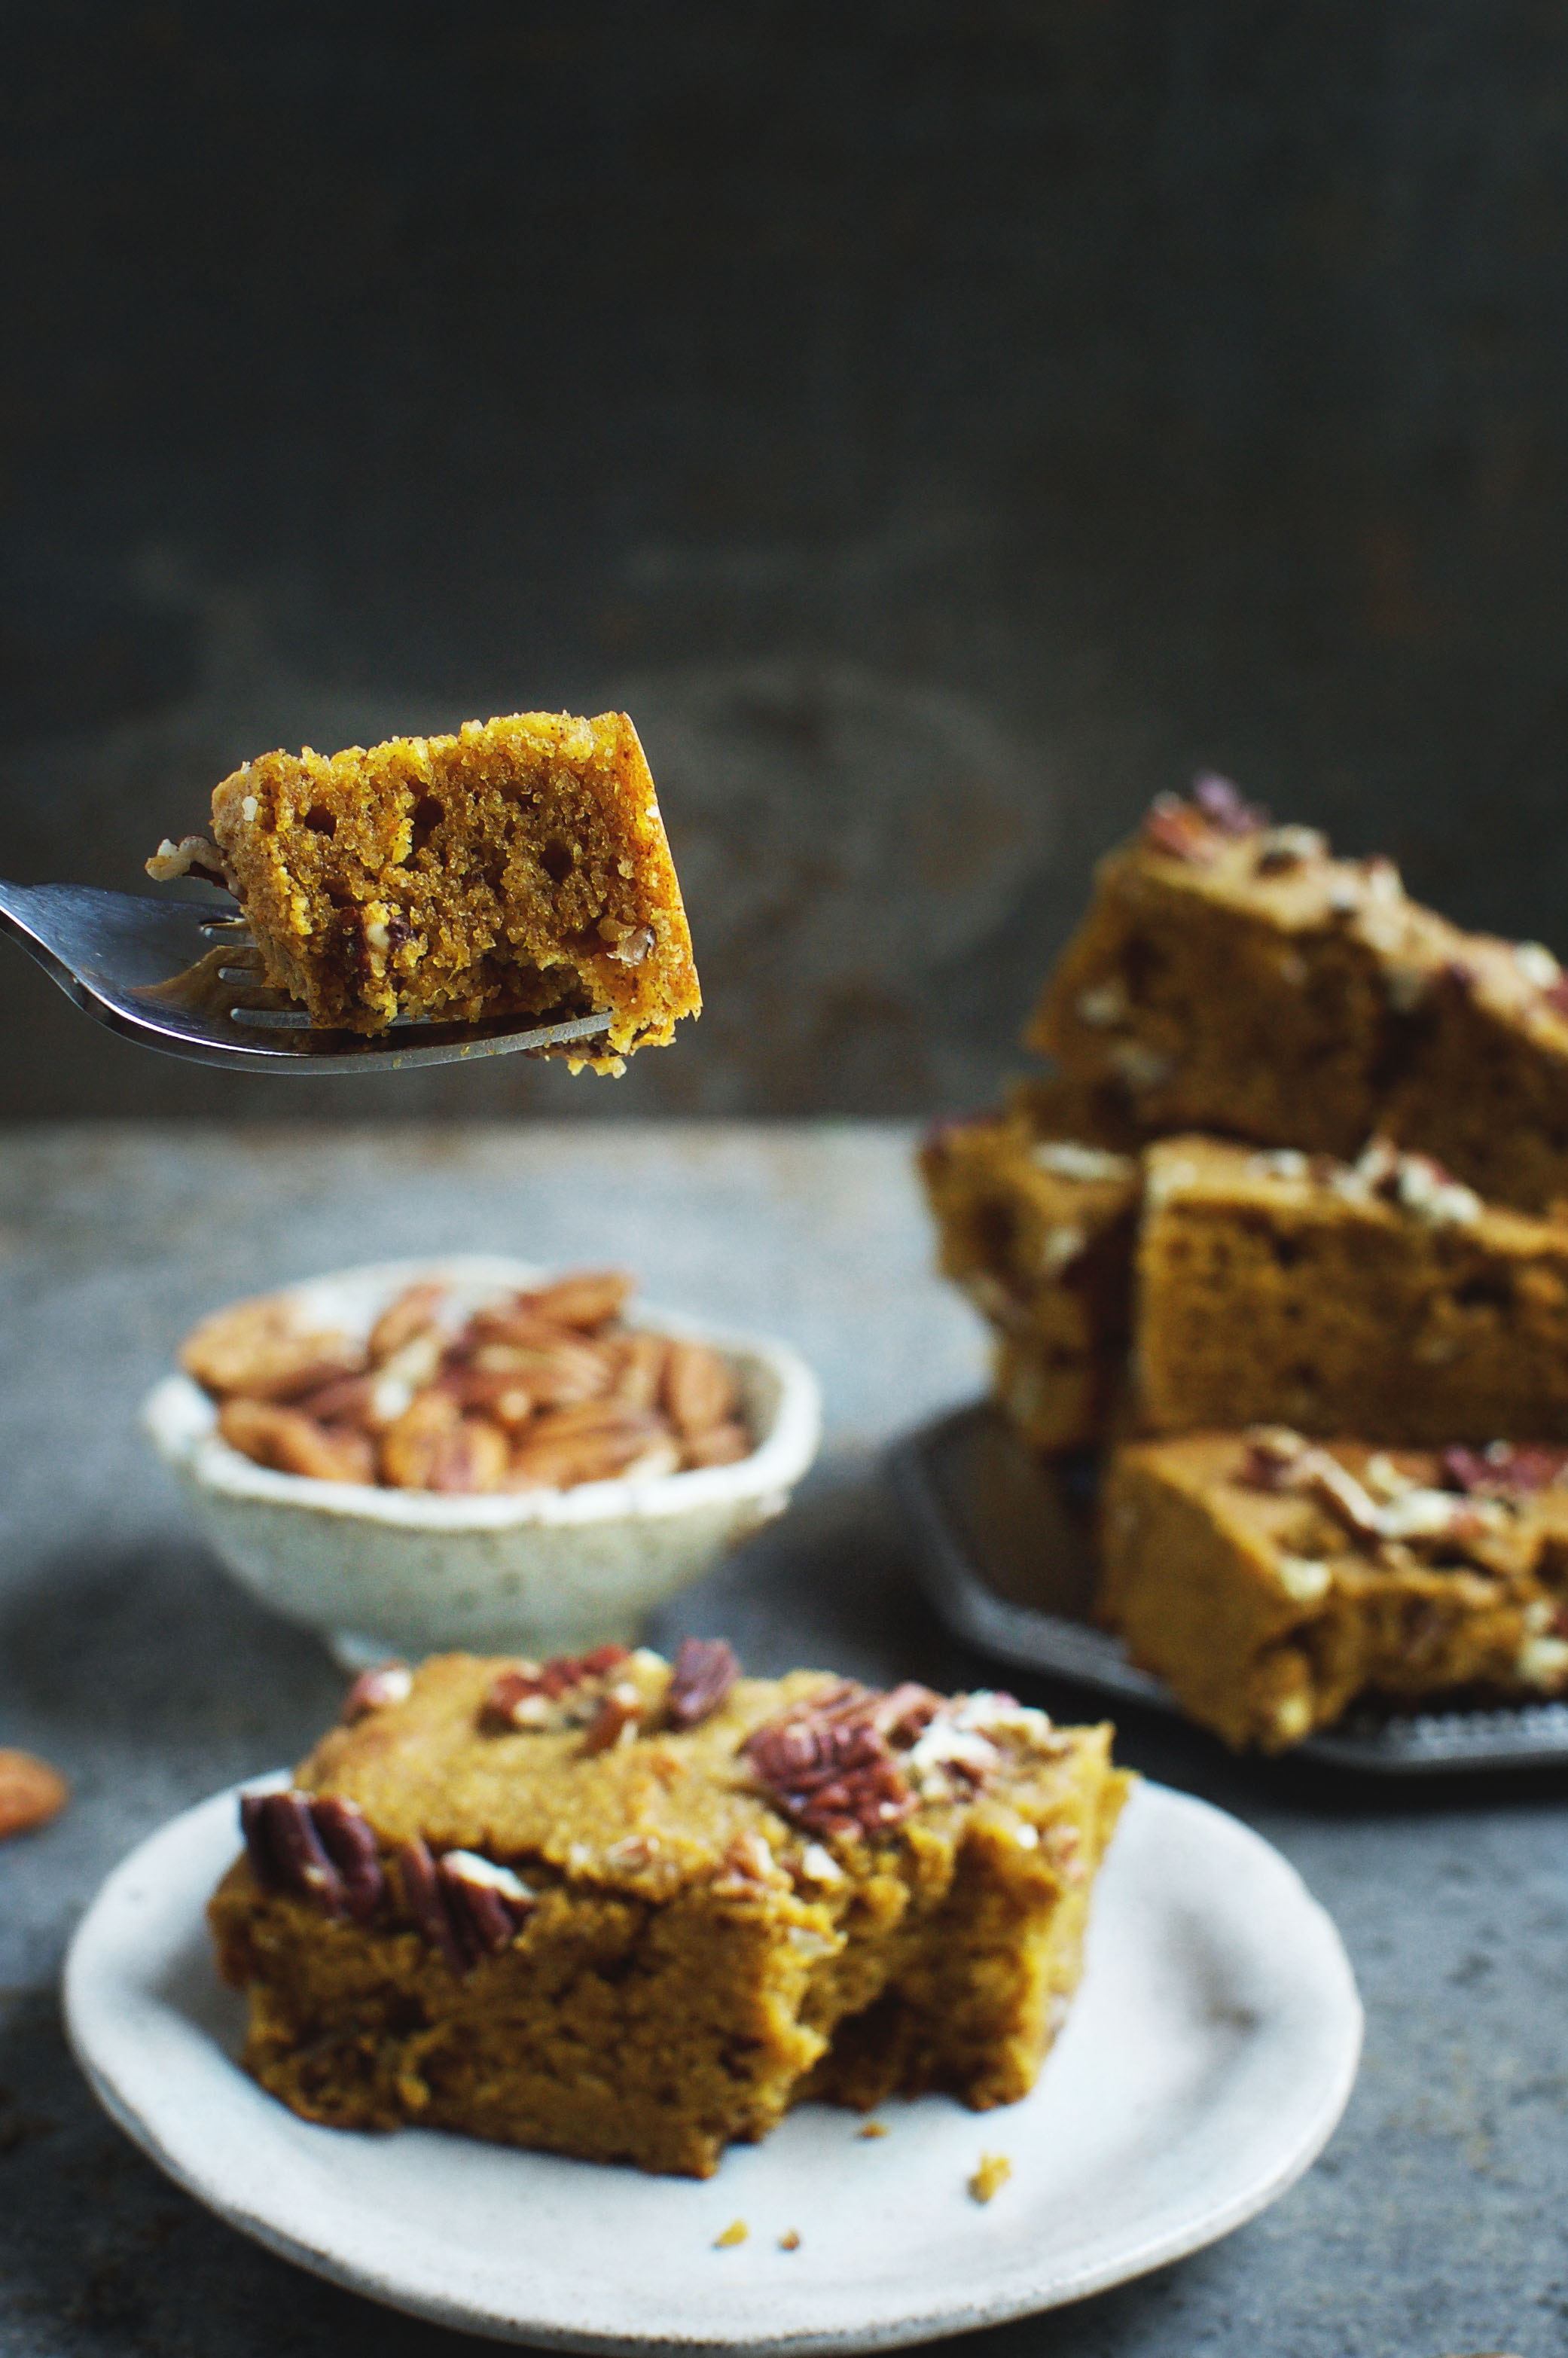 These Low-Carb Pumpkin Pecan Bars make a delicious fall dessert or snack. This bar cookie recipe can work for those who follow low-carb, ketogenic, Atkins, gluten-free, grain-free, diabetic, or Banting diets.